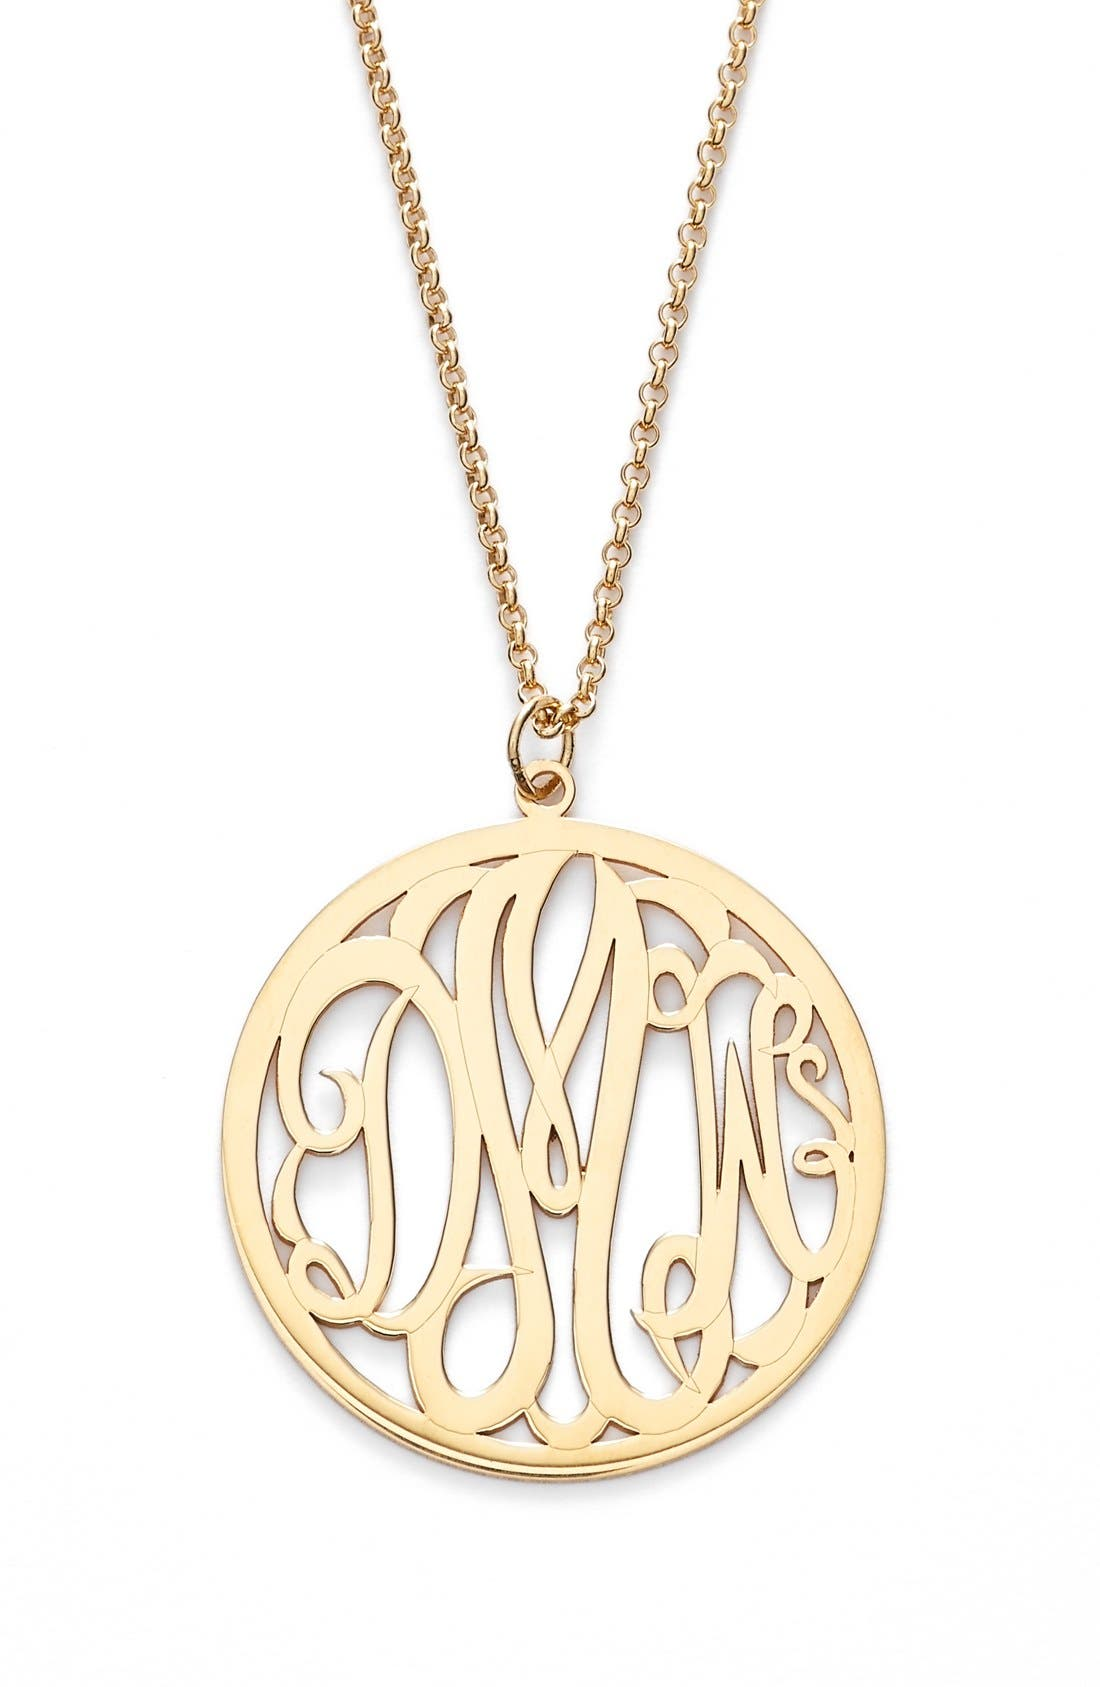 Personalized 3-Letter Monogram Necklace,                             Main thumbnail 1, color,                             Gold